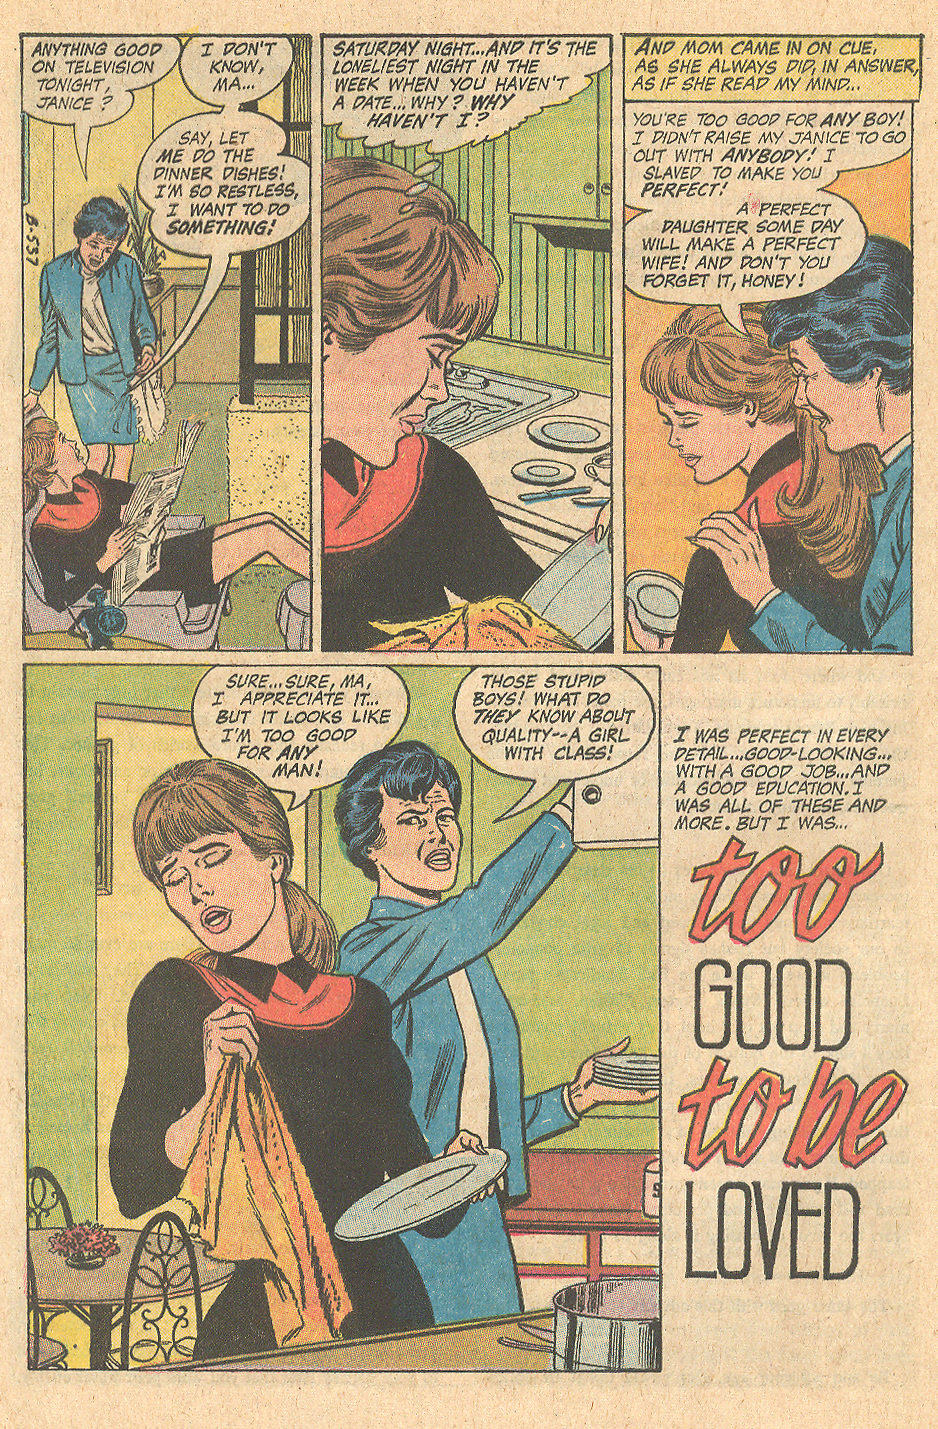 """Too Good to be Loved"" Girls' Romances #149 (June 1970)"